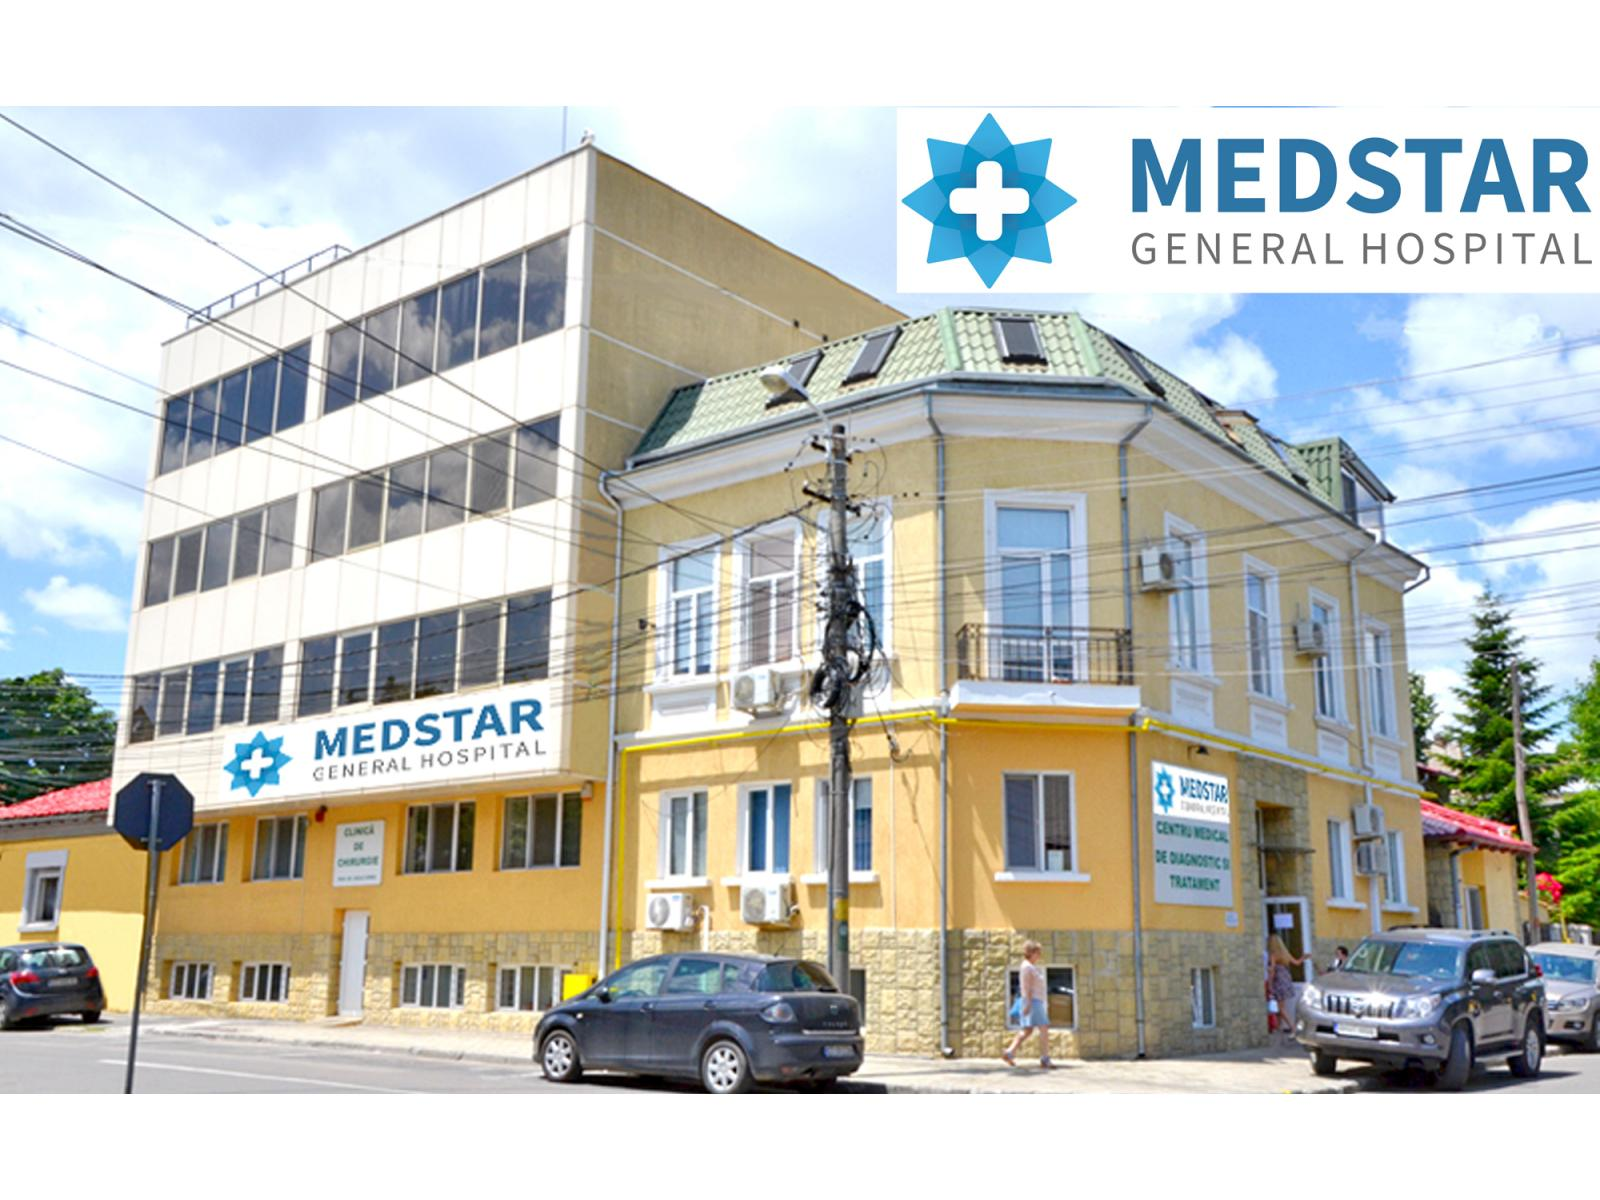 MEDSTAR General Hospital - cladirea4slider.jpg